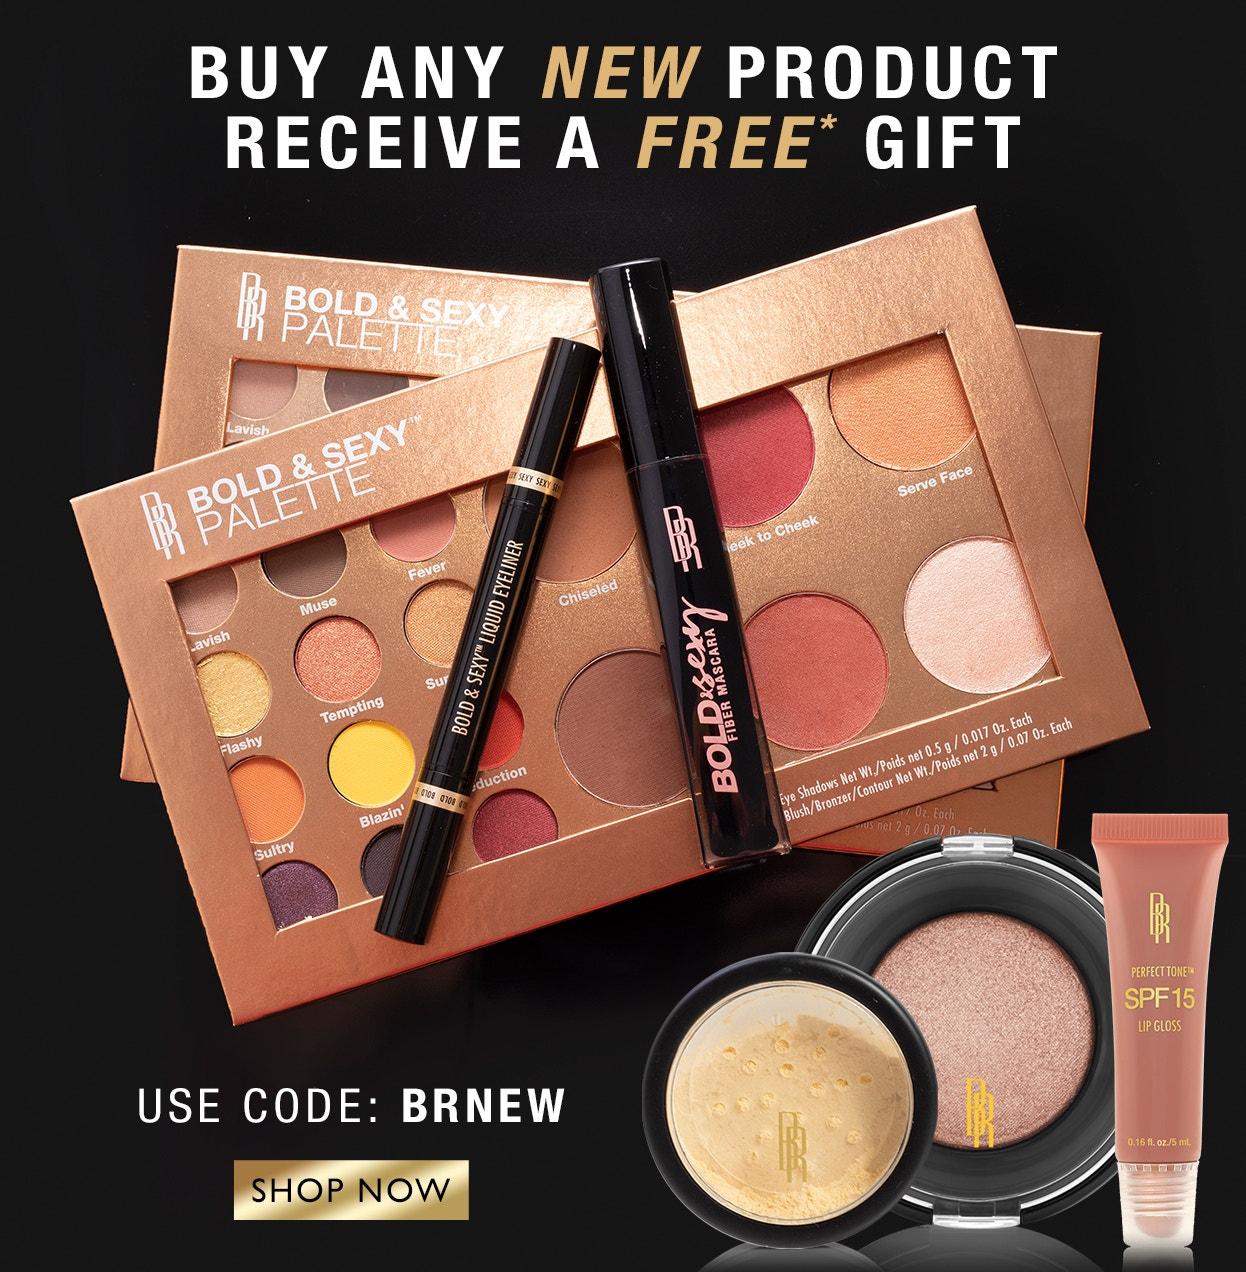 But Any New Product Receive a Free Gift | Use Code: BRNEW | Shop now!